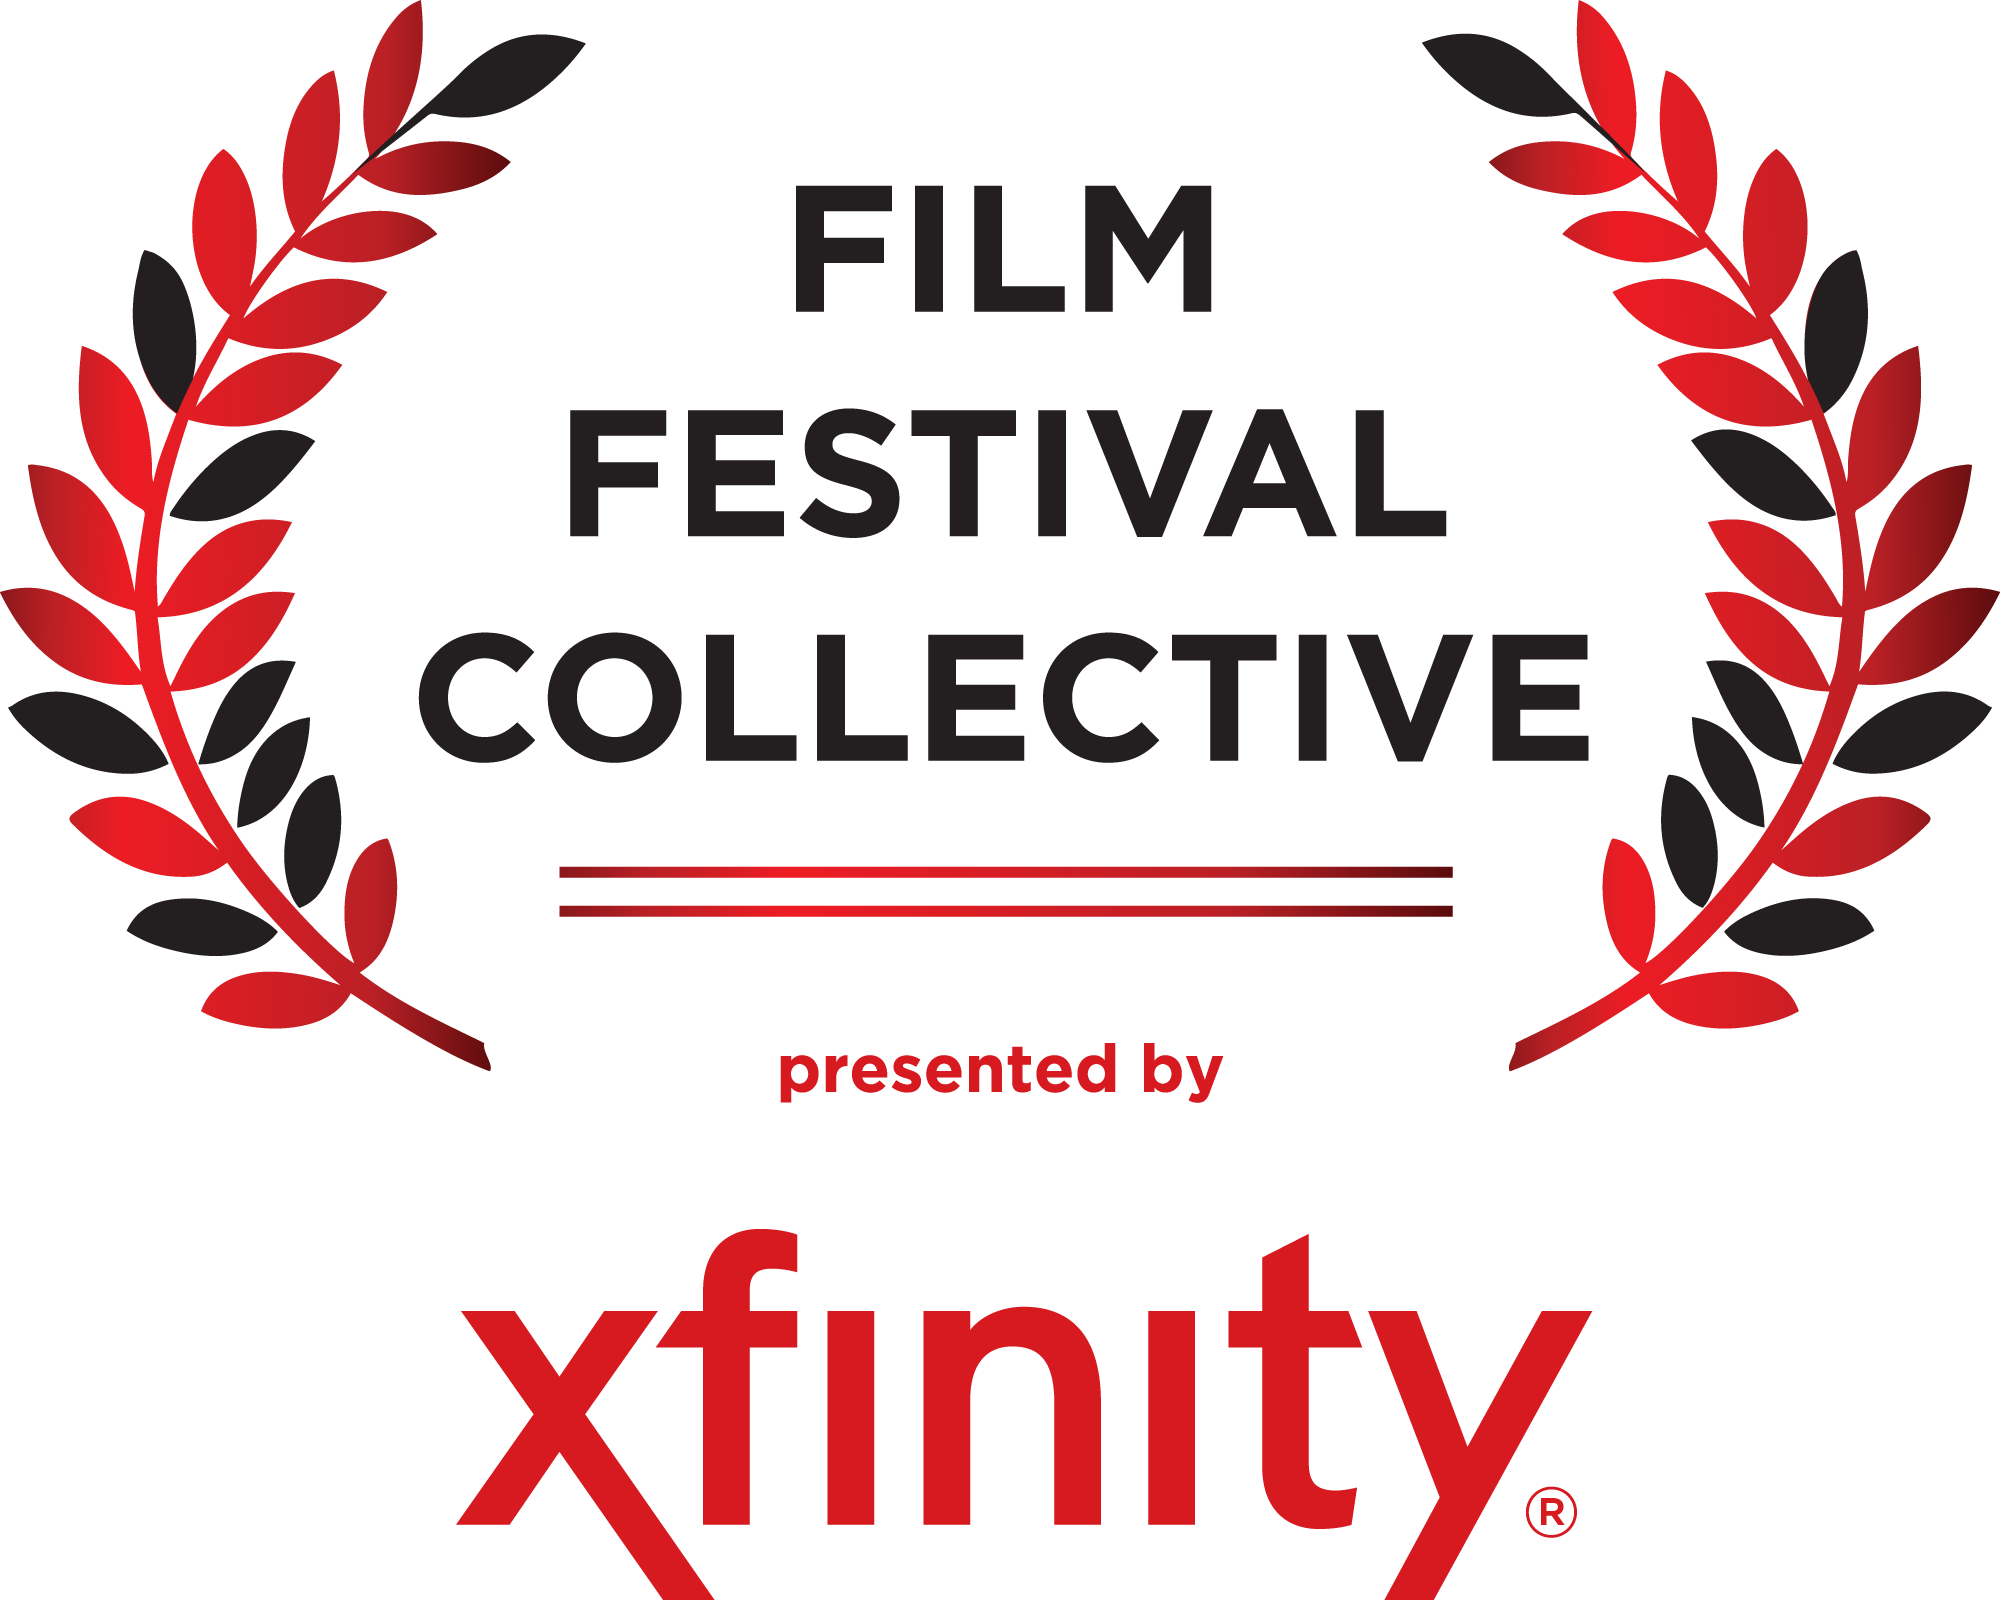 Film-Festival-Collective-Laurels-LARGE.png